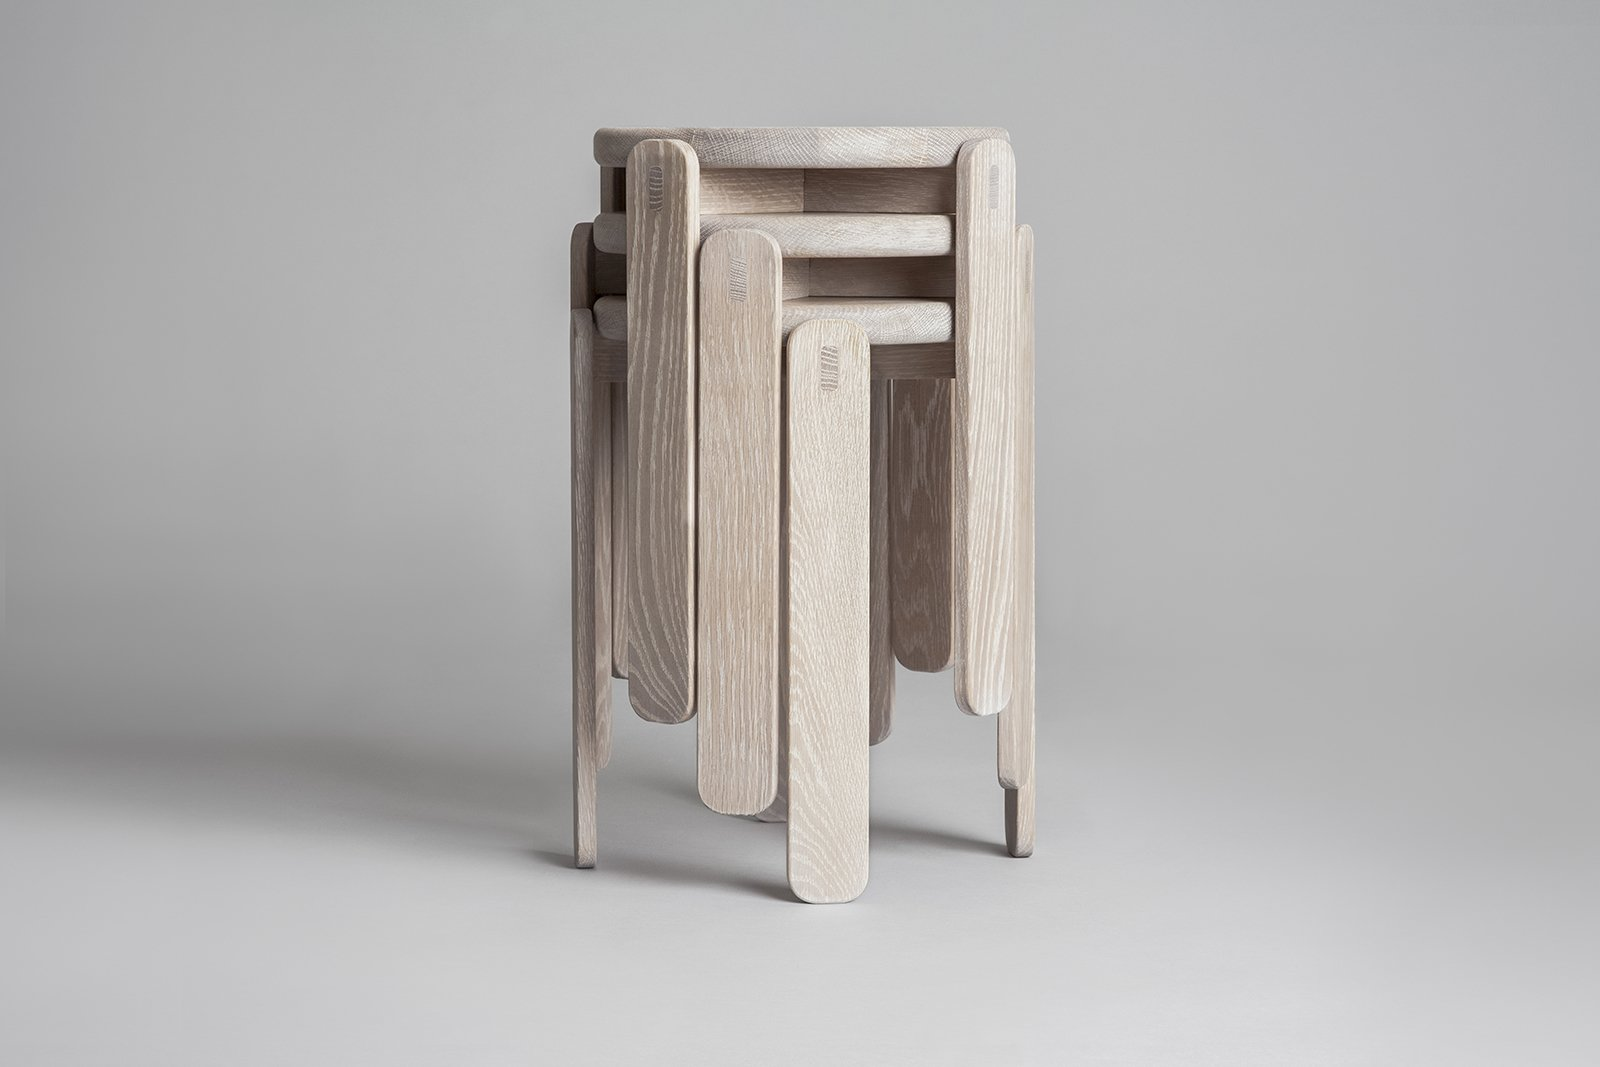 #seatingdesign #seating #stool #Lolly #Gridy #oak #stackable #minimalist #modern #NorwegianPresence #contemporary #furniture   100+ Best Modern Seating Designs